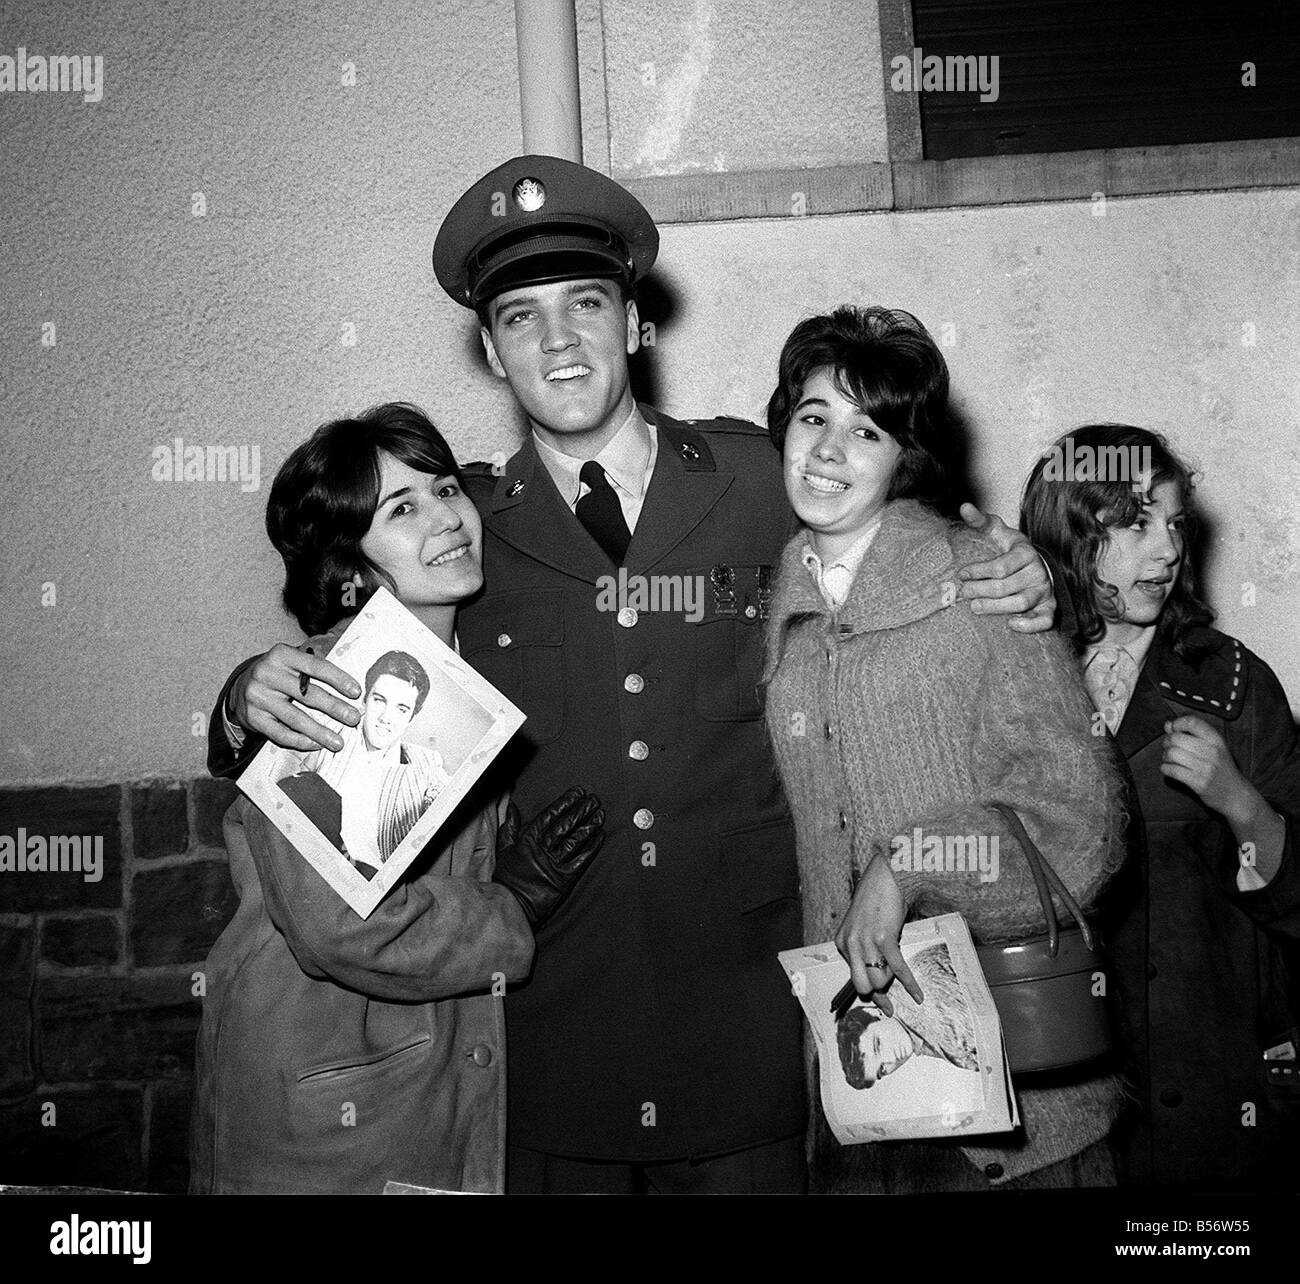 Elvis Presley with fans before press conference in Germany March 1962 - Stock Image